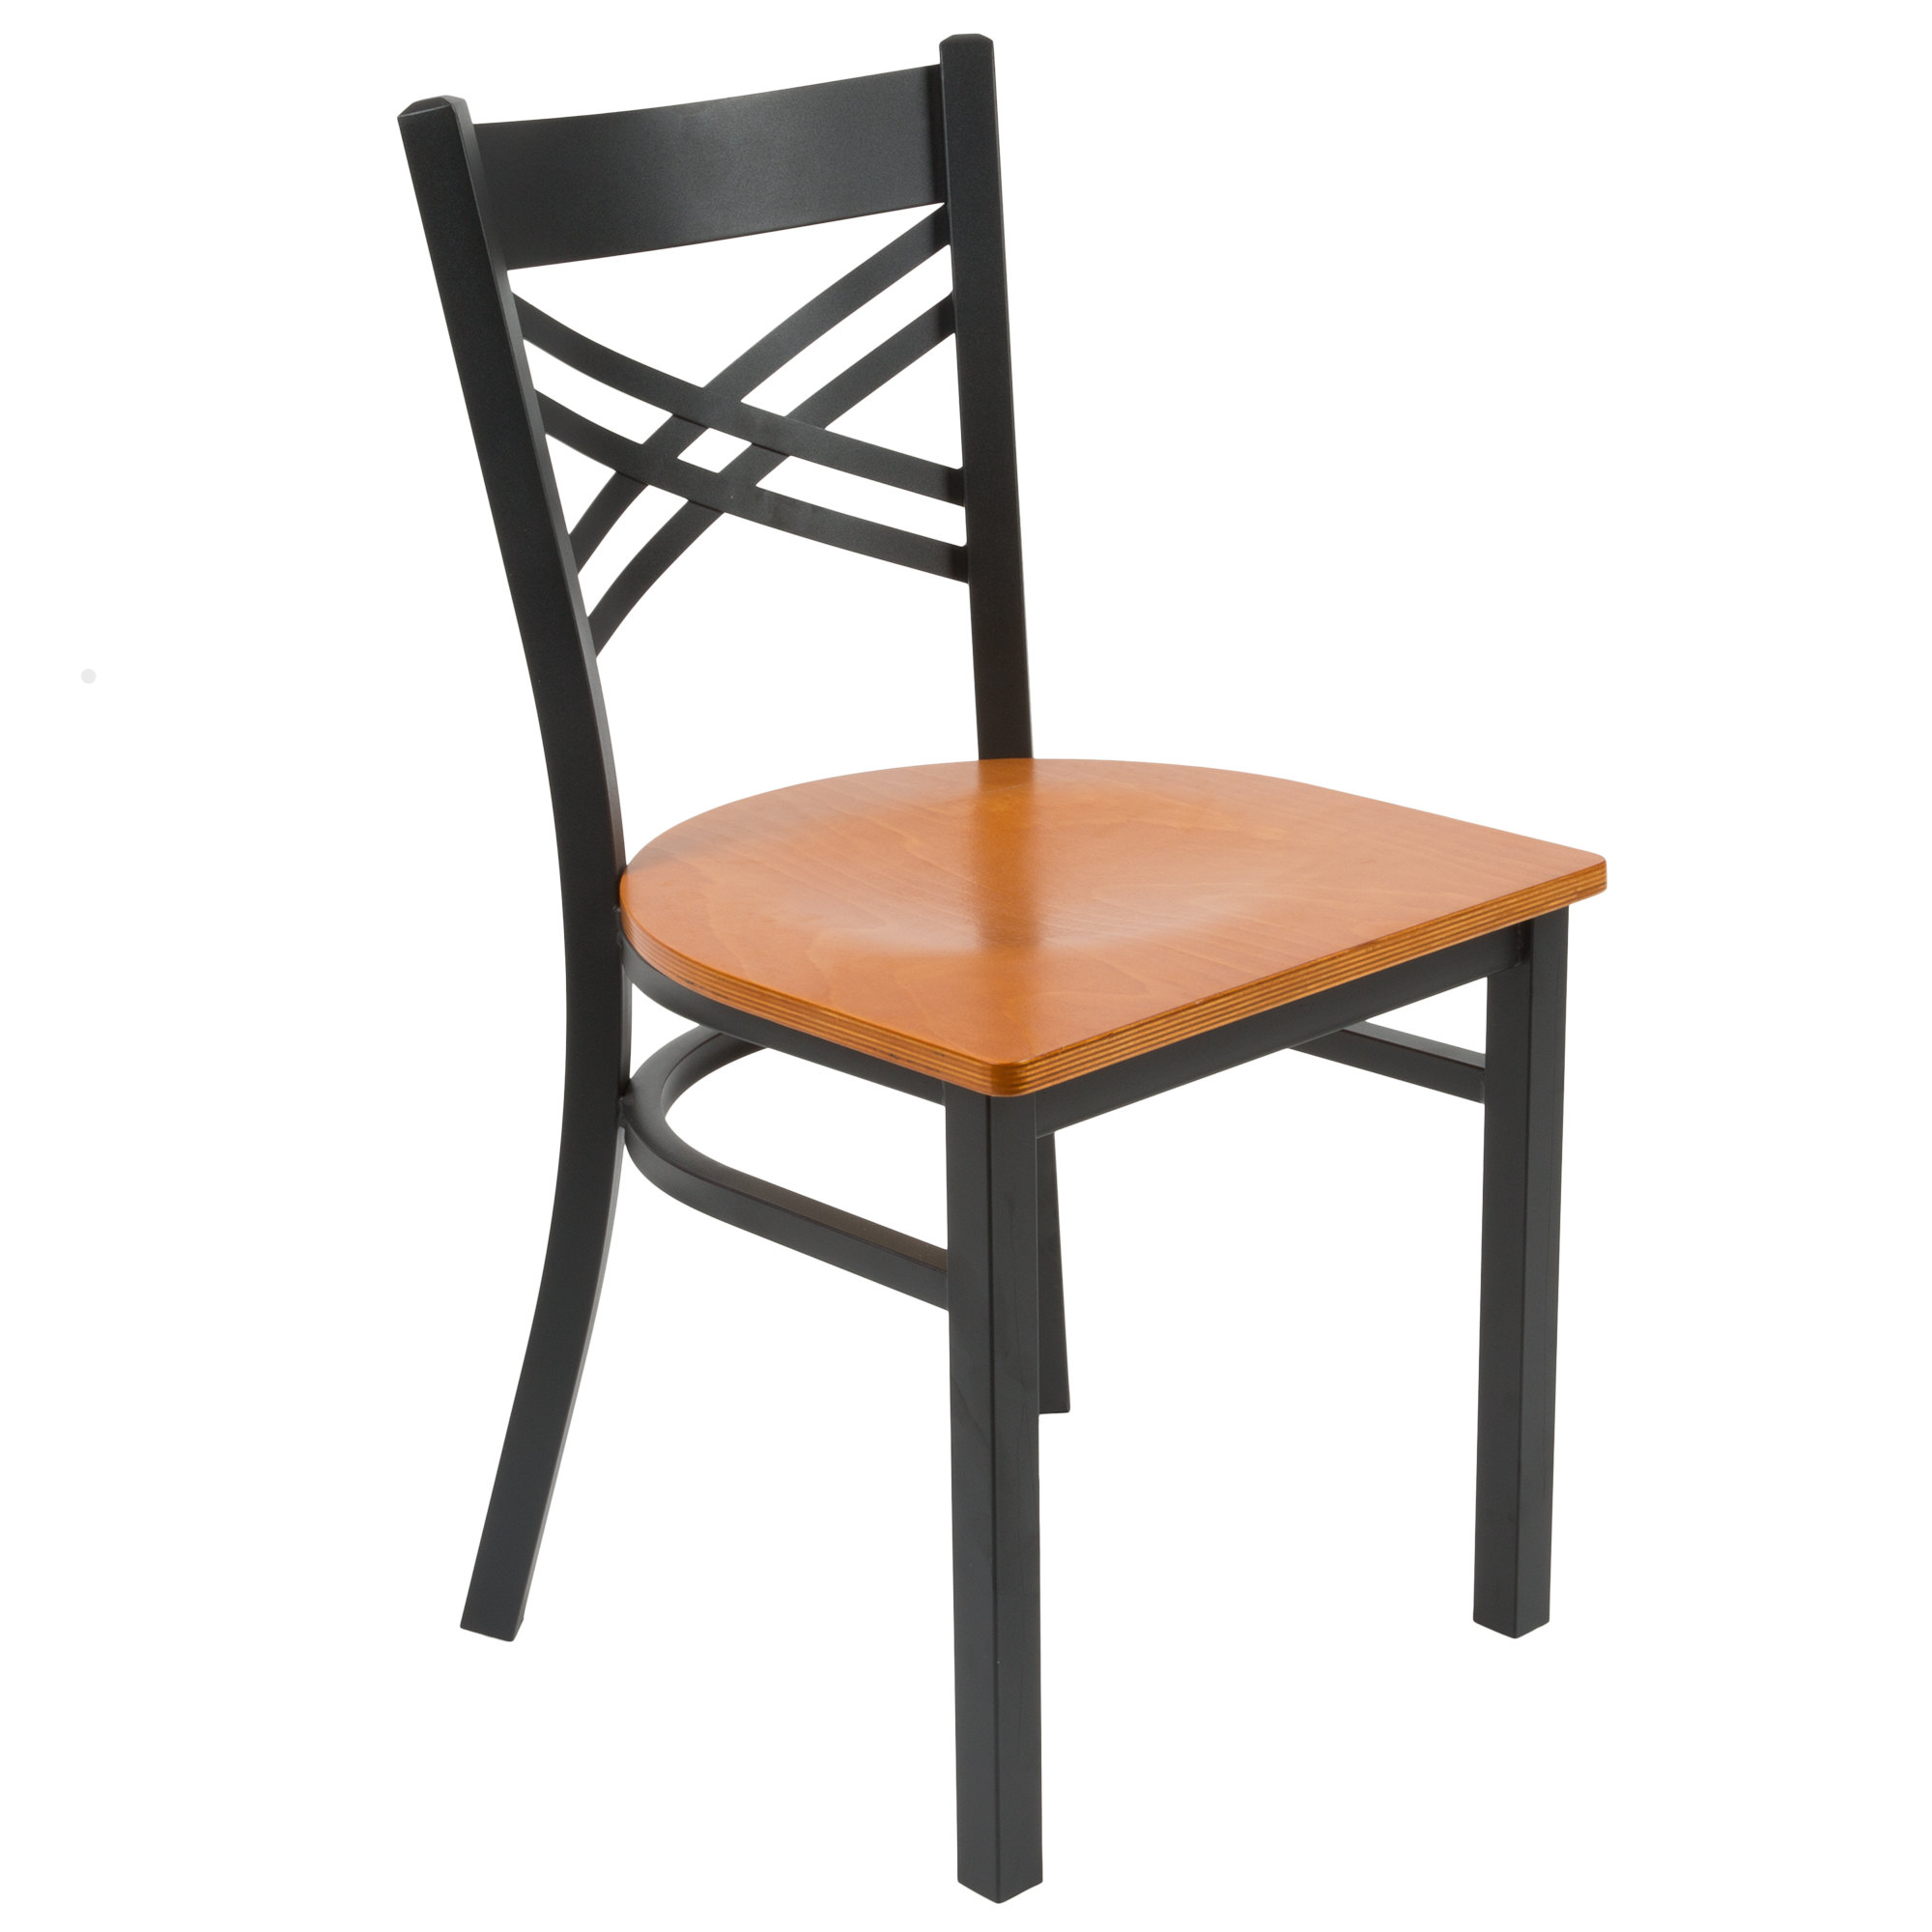 #153 - Black Cross Back Design Restaurant Metal Chair with Cherry Wood Seat